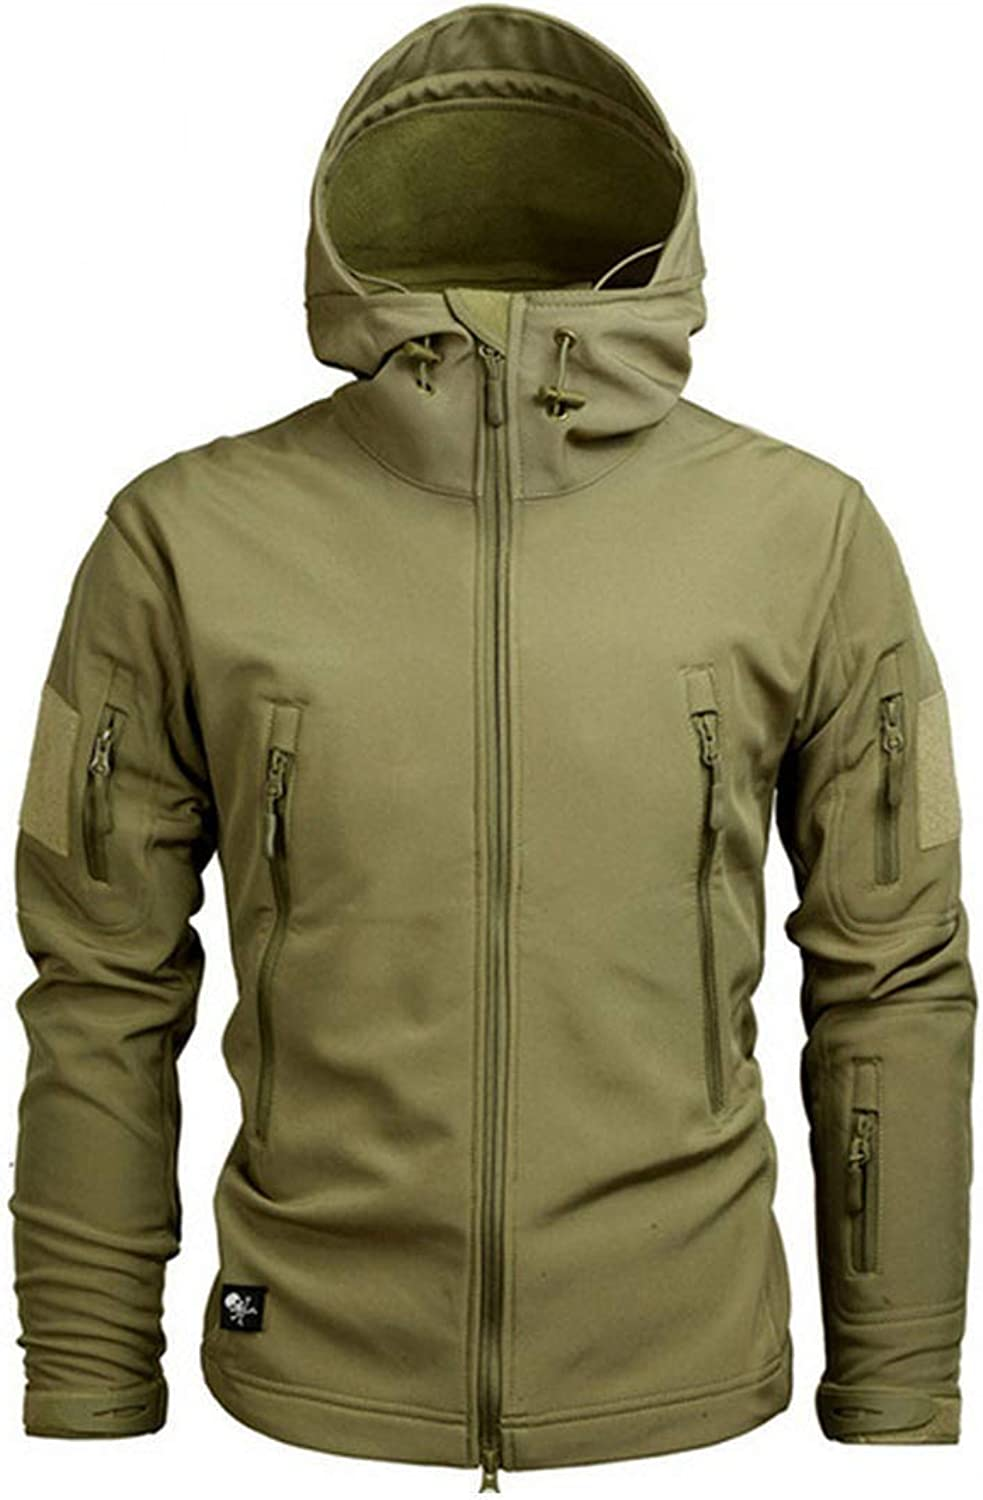 MEIshop Clothing Autumn Mens Military Camouflage Fleece et Army Tactical Multicam Male Windbreakers